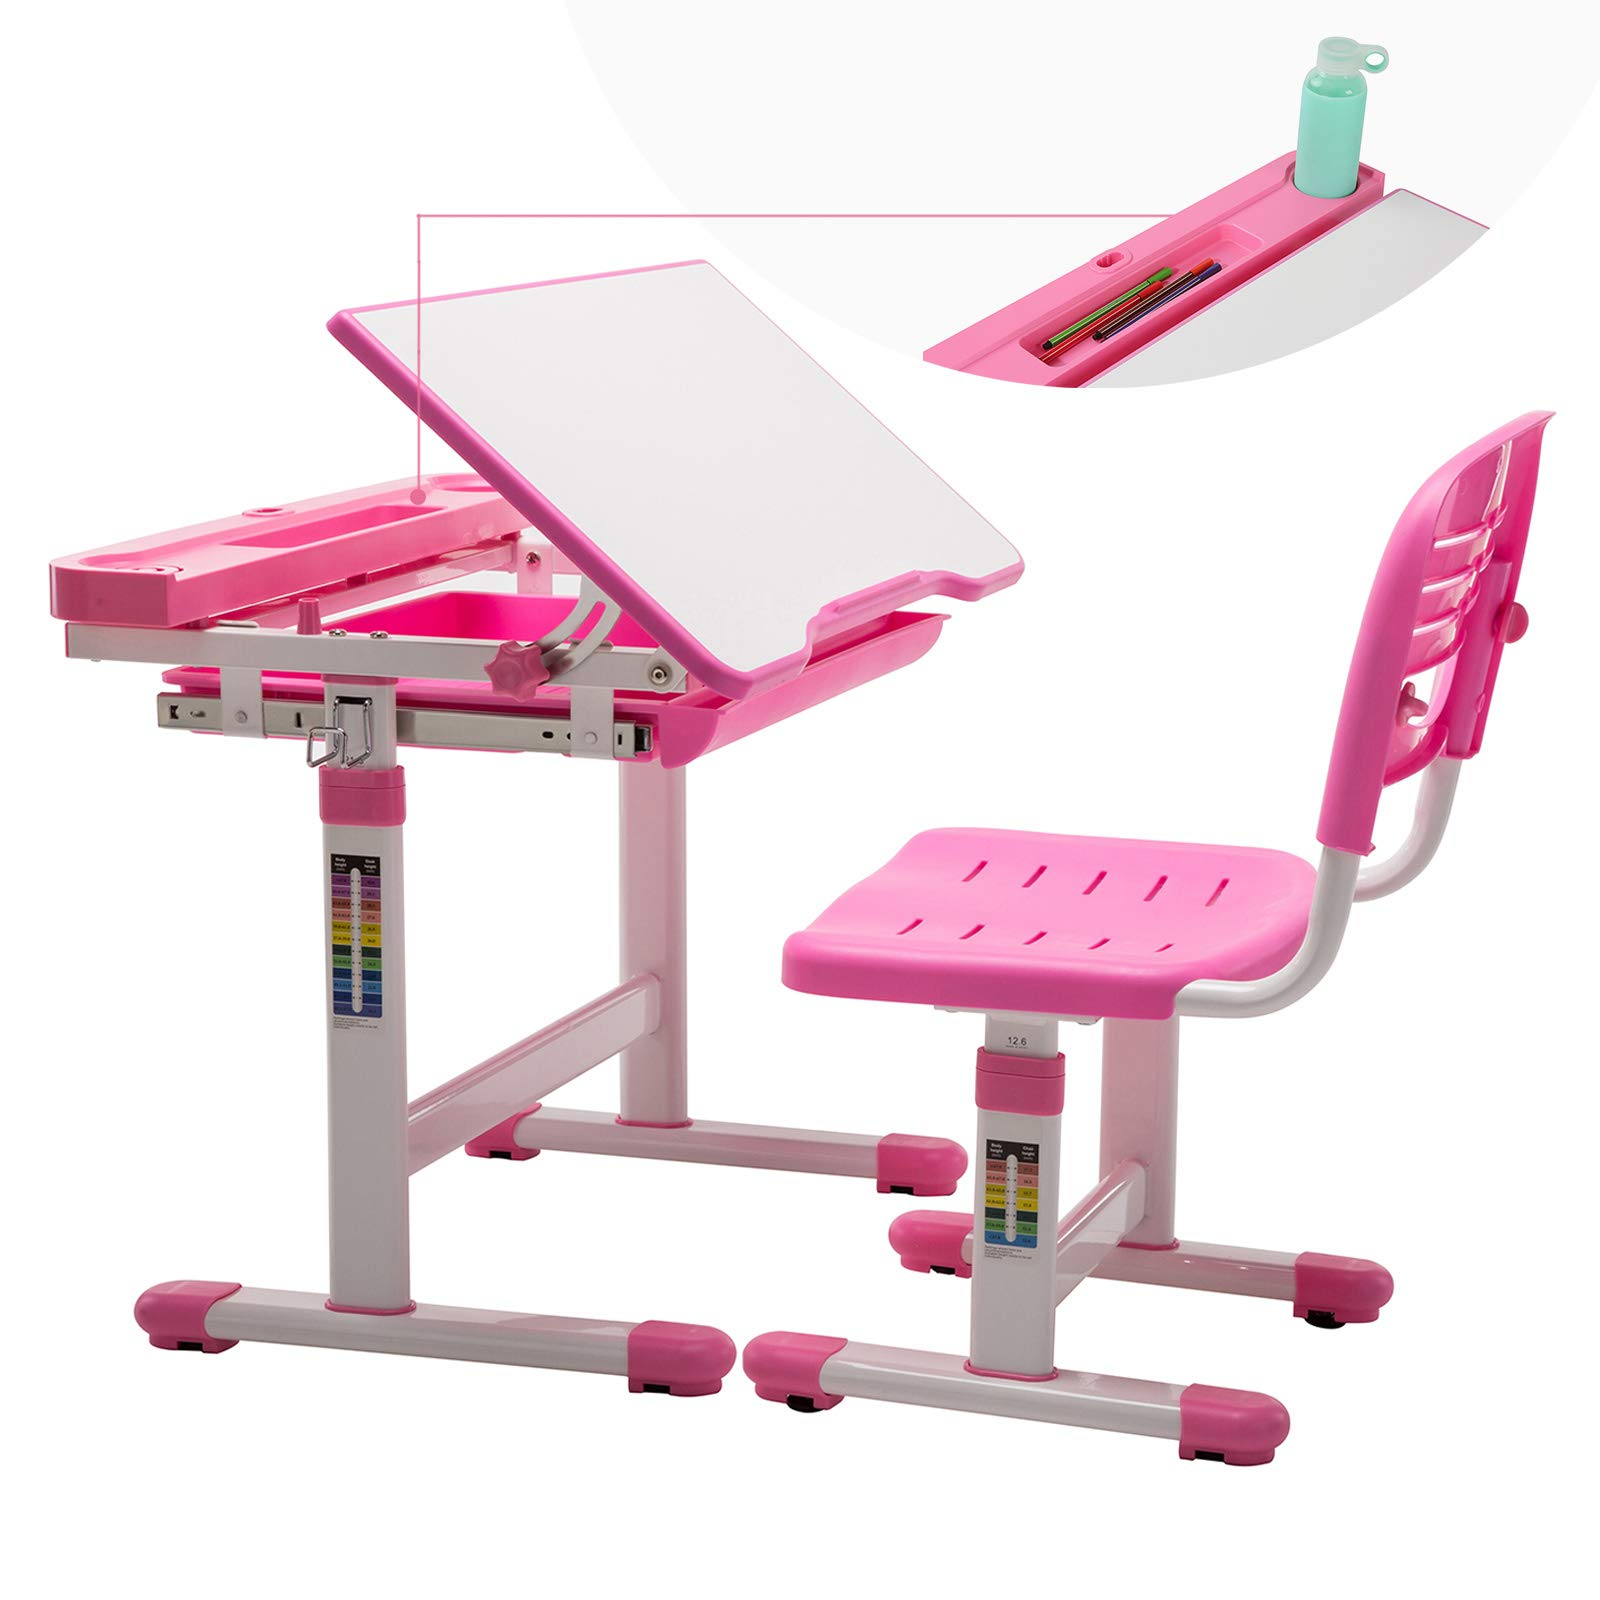 Children Desk and Chair Set, Height Adjustable Kids Sturdy Table, Student School Writing Desks for Girls Pink